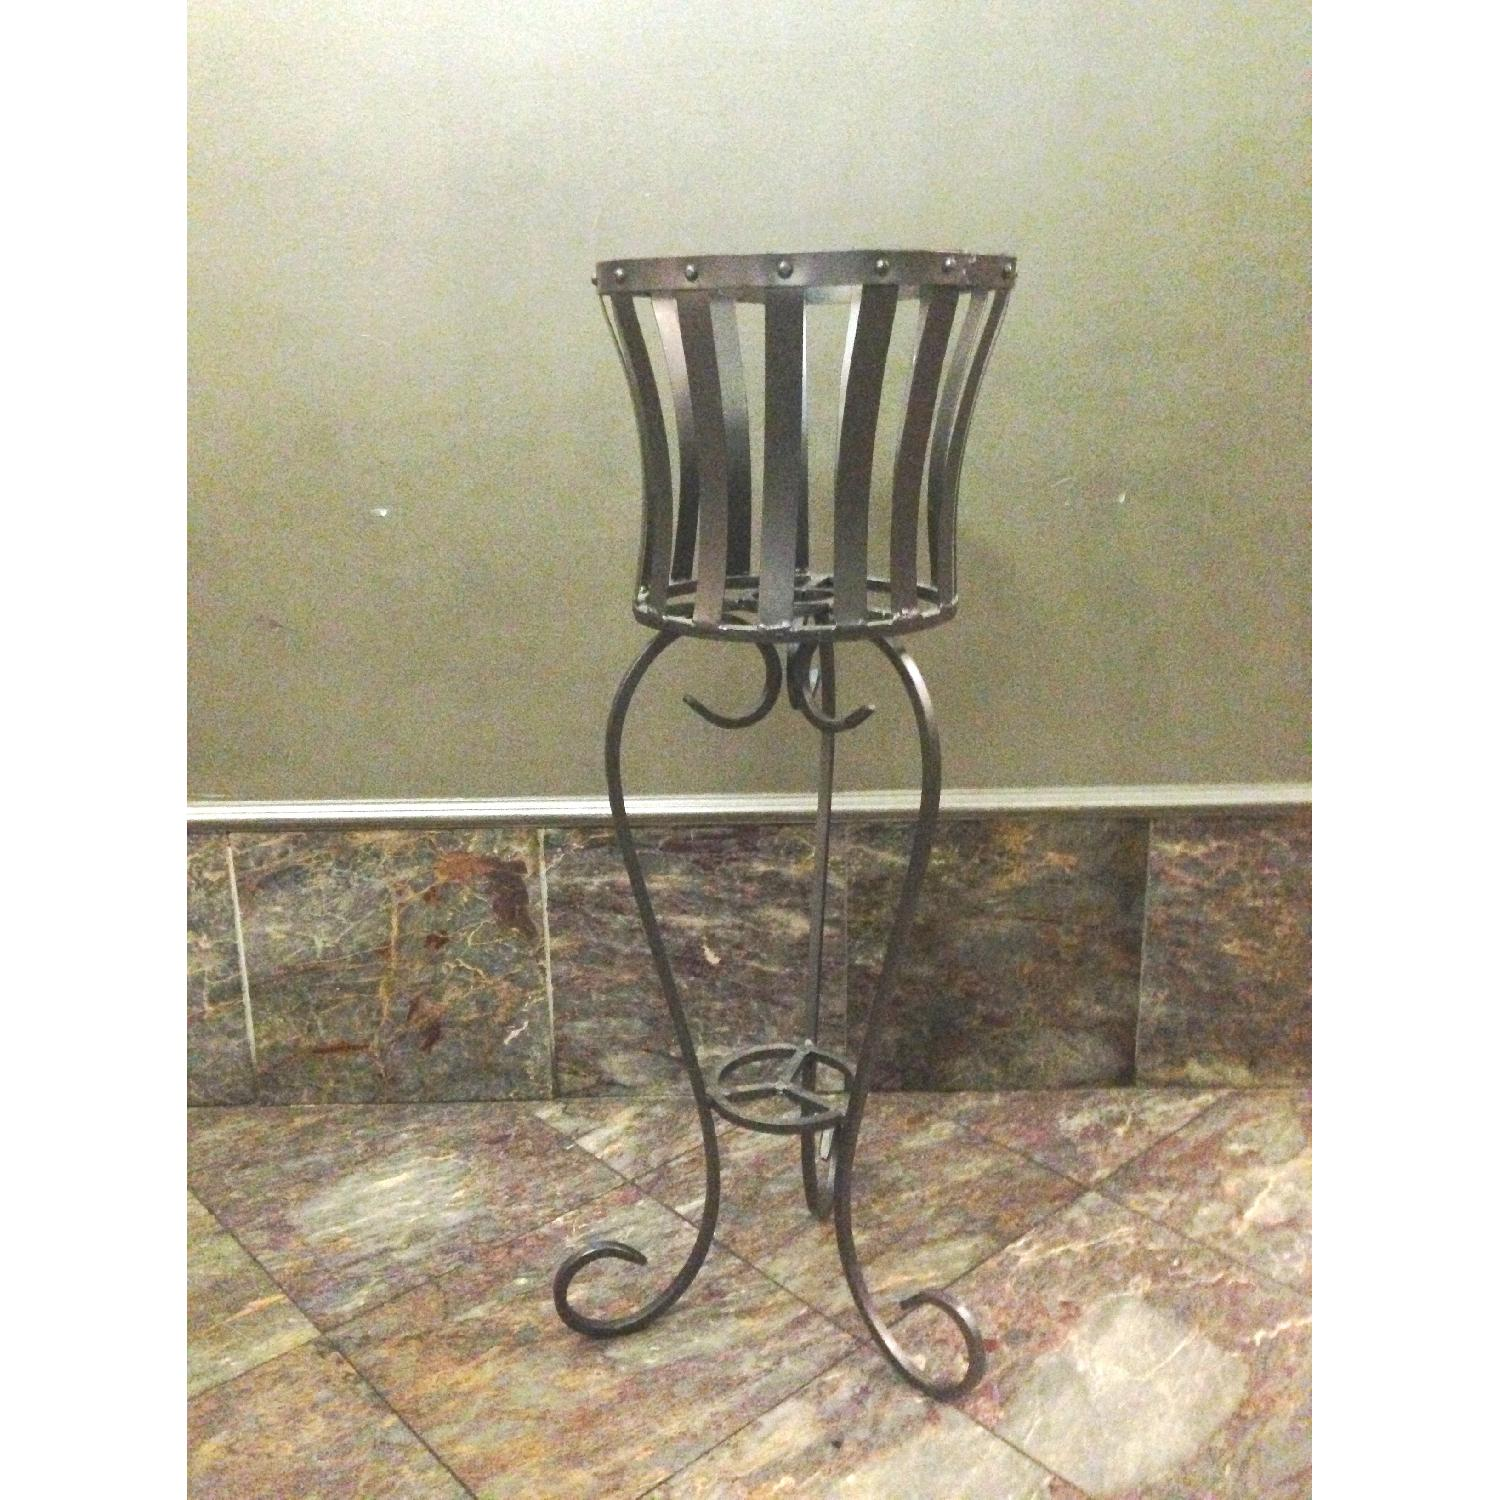 Vintage Wrought Iron Rustic Plant Stand w/ Scroll Legs - image-1